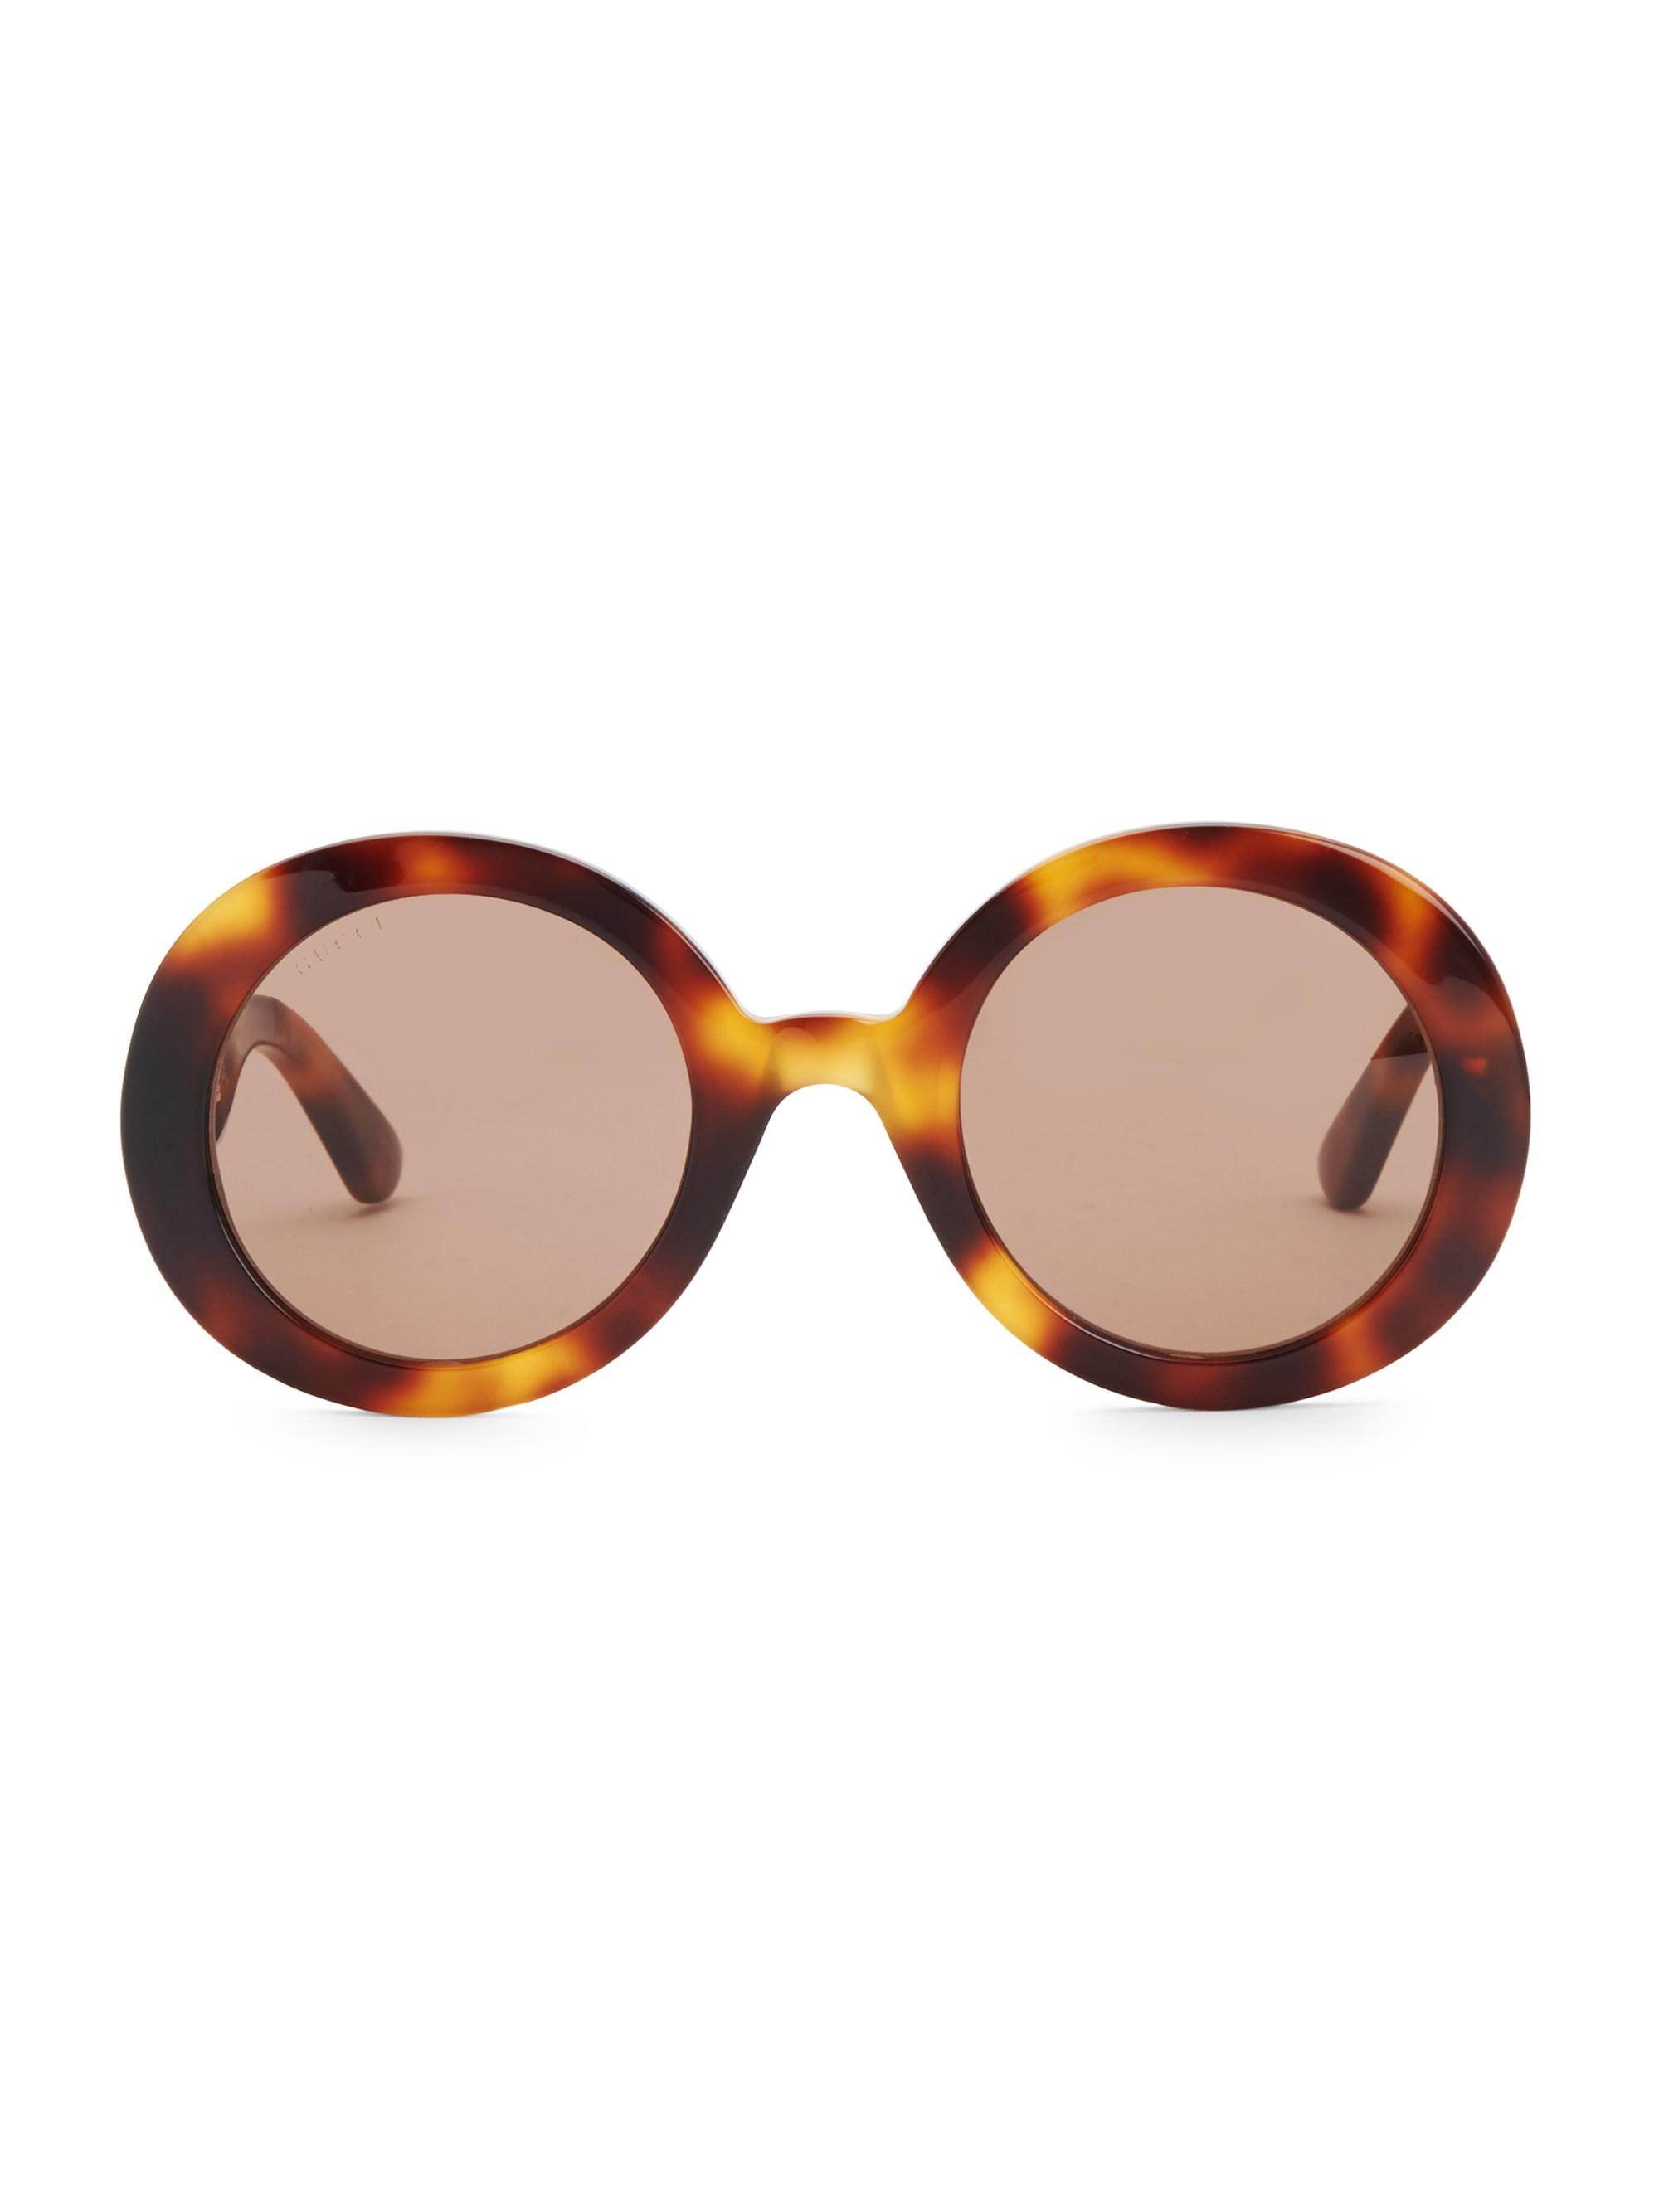 ab6023bf0a009 Lyst - Gucci Urban 52mm Round Sunglasses in Brown